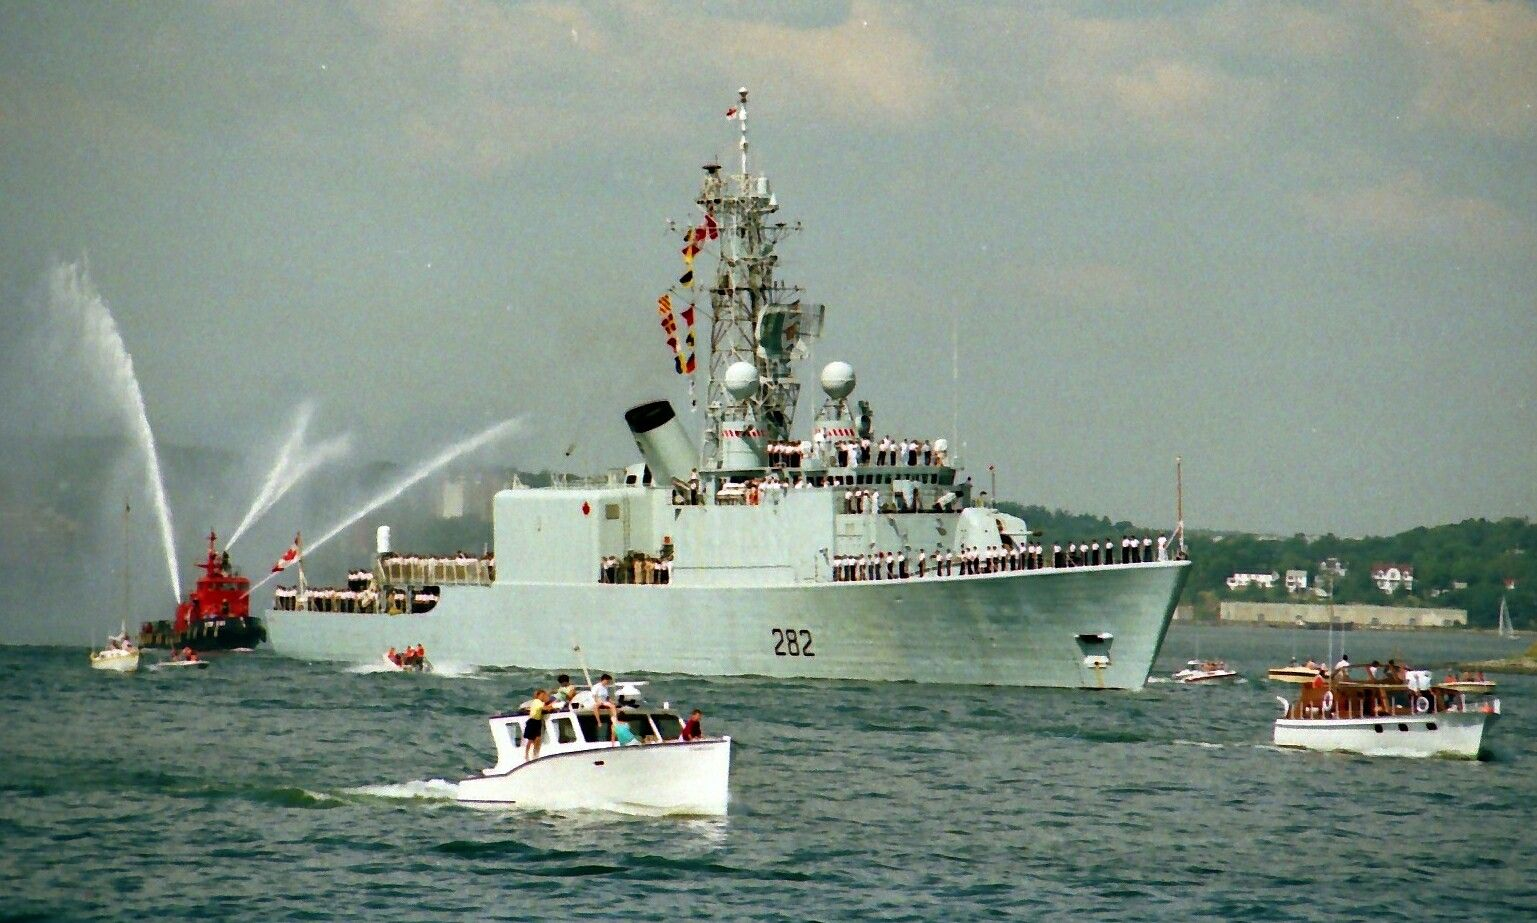 Hmcs Athabaskan Ddg 282 Sails From Halifax Nova Scotia In August 1990 As Part Of The Royal Canadian Nav Royal Canadian Navy Downtown Halifax Canadian Military